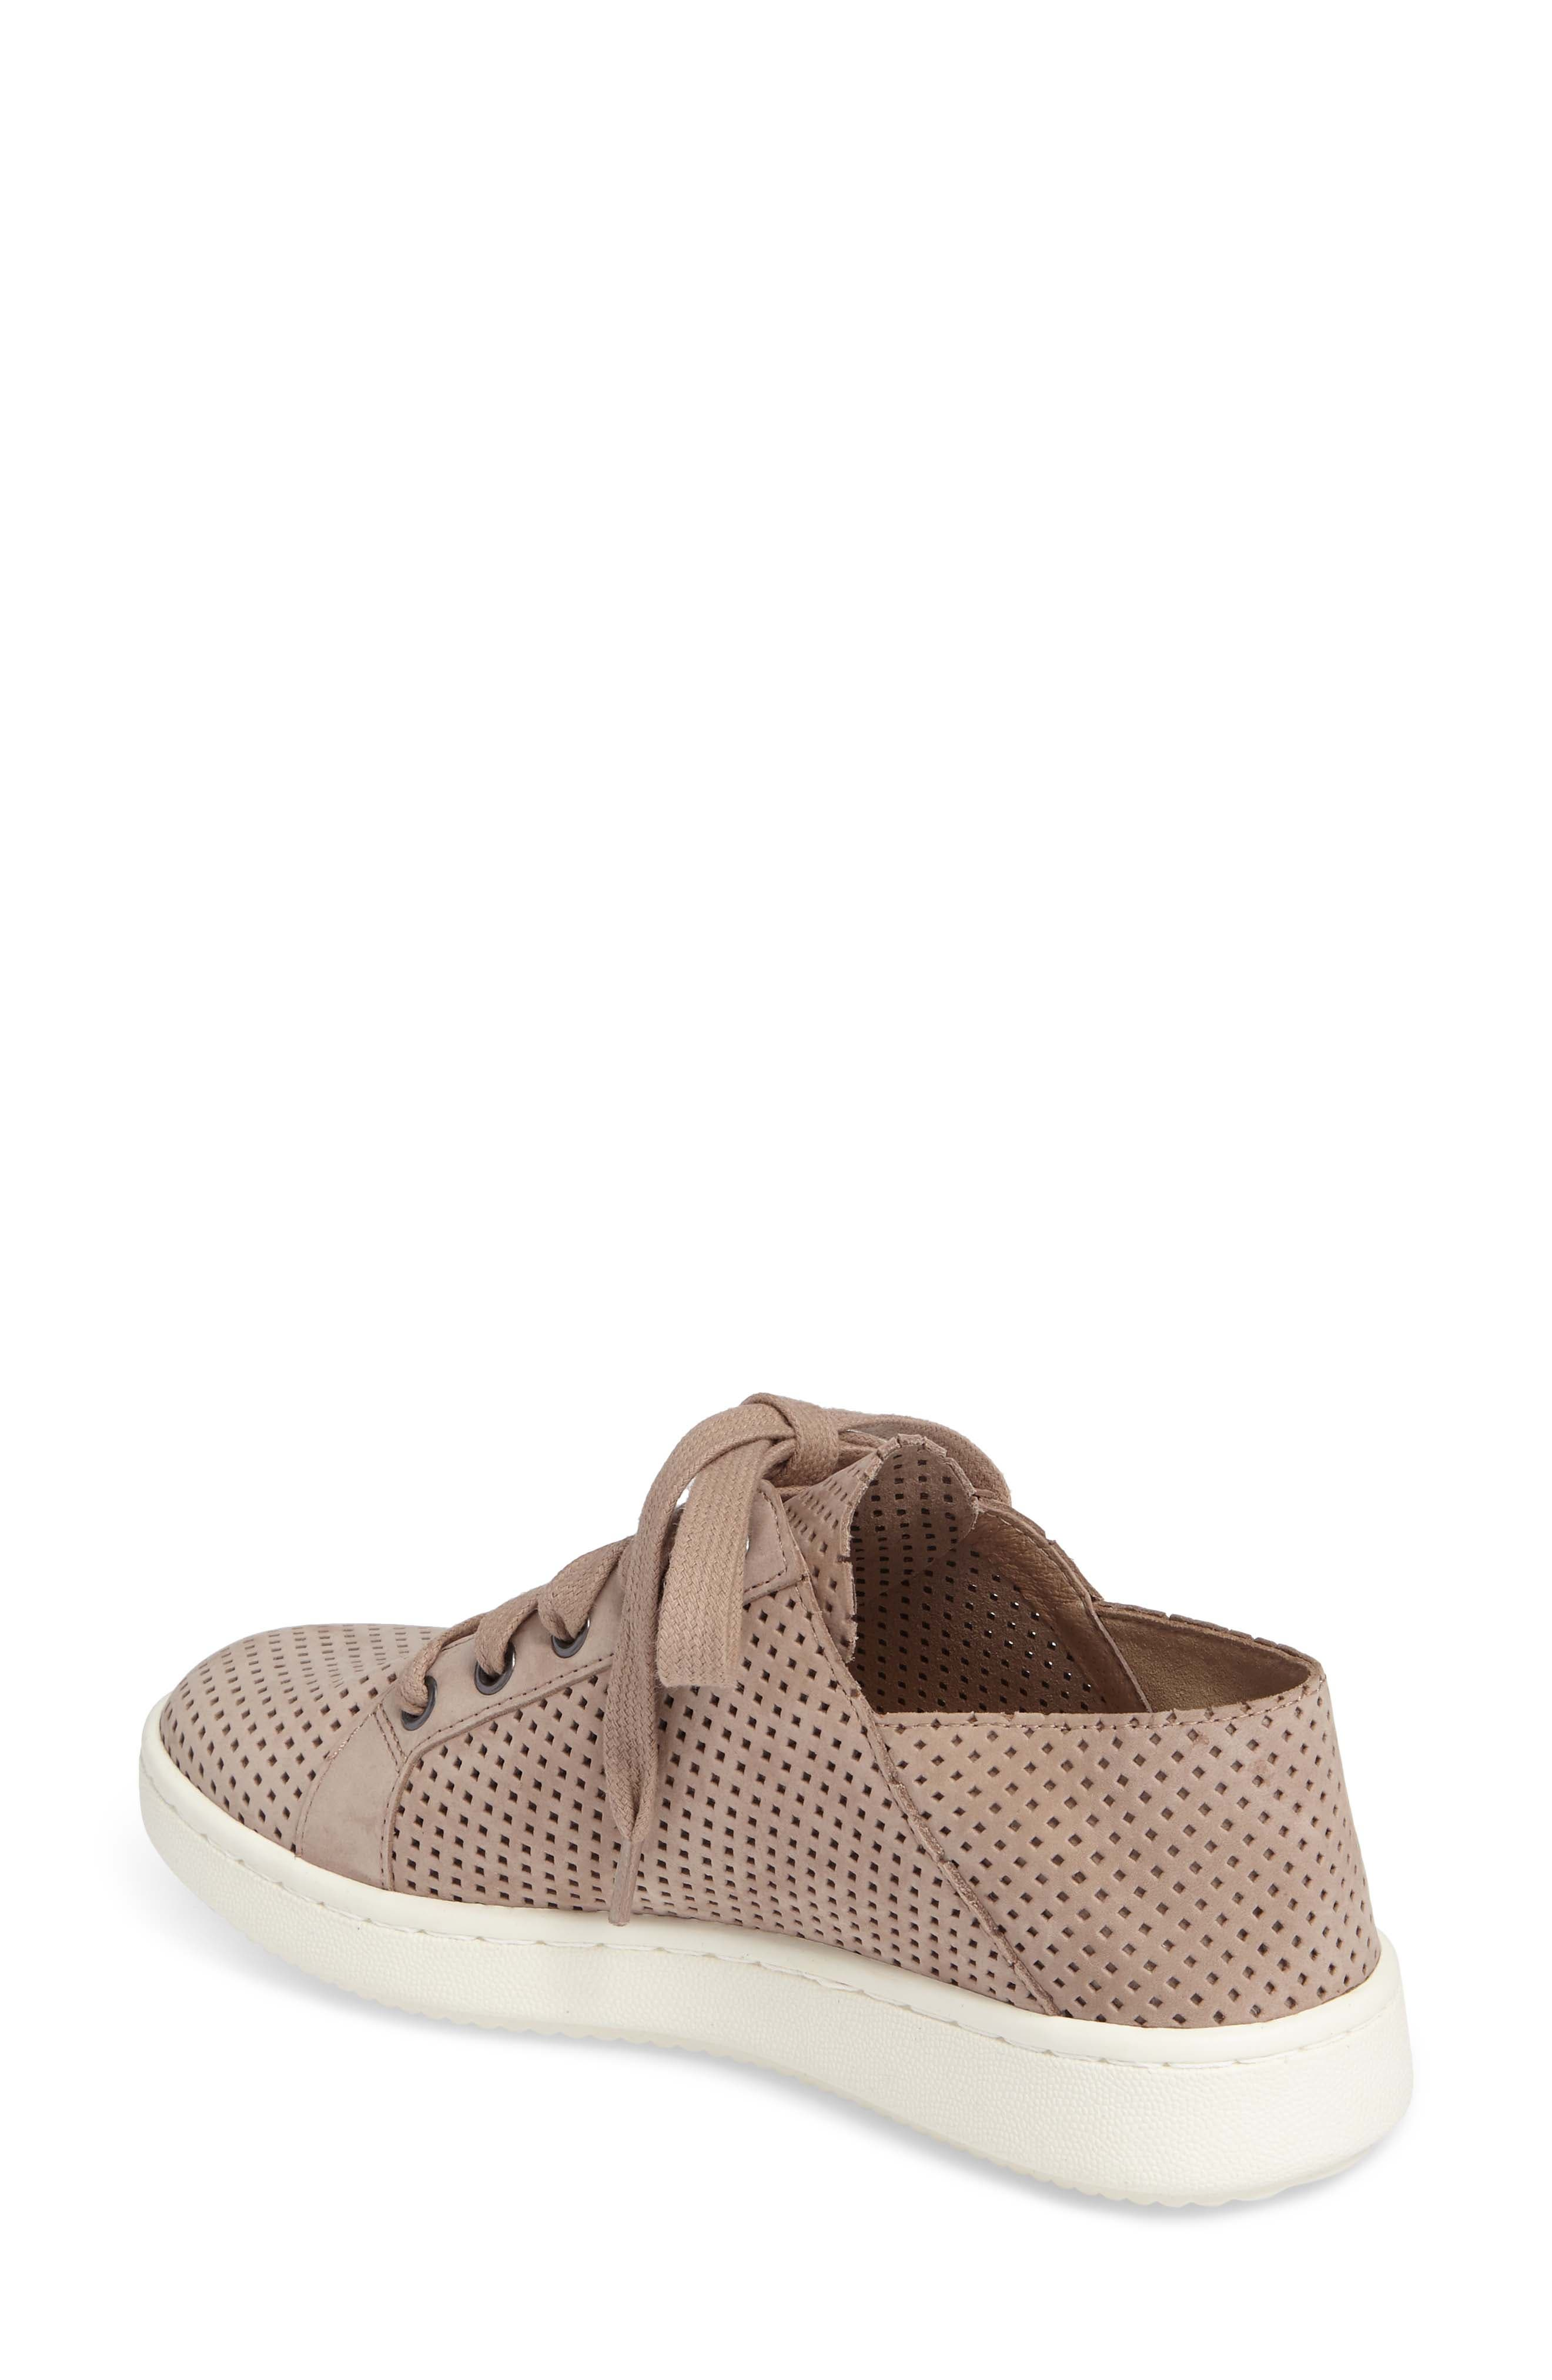 Clifton Perforated Sneaker,                             Alternate thumbnail 2, color,                             250